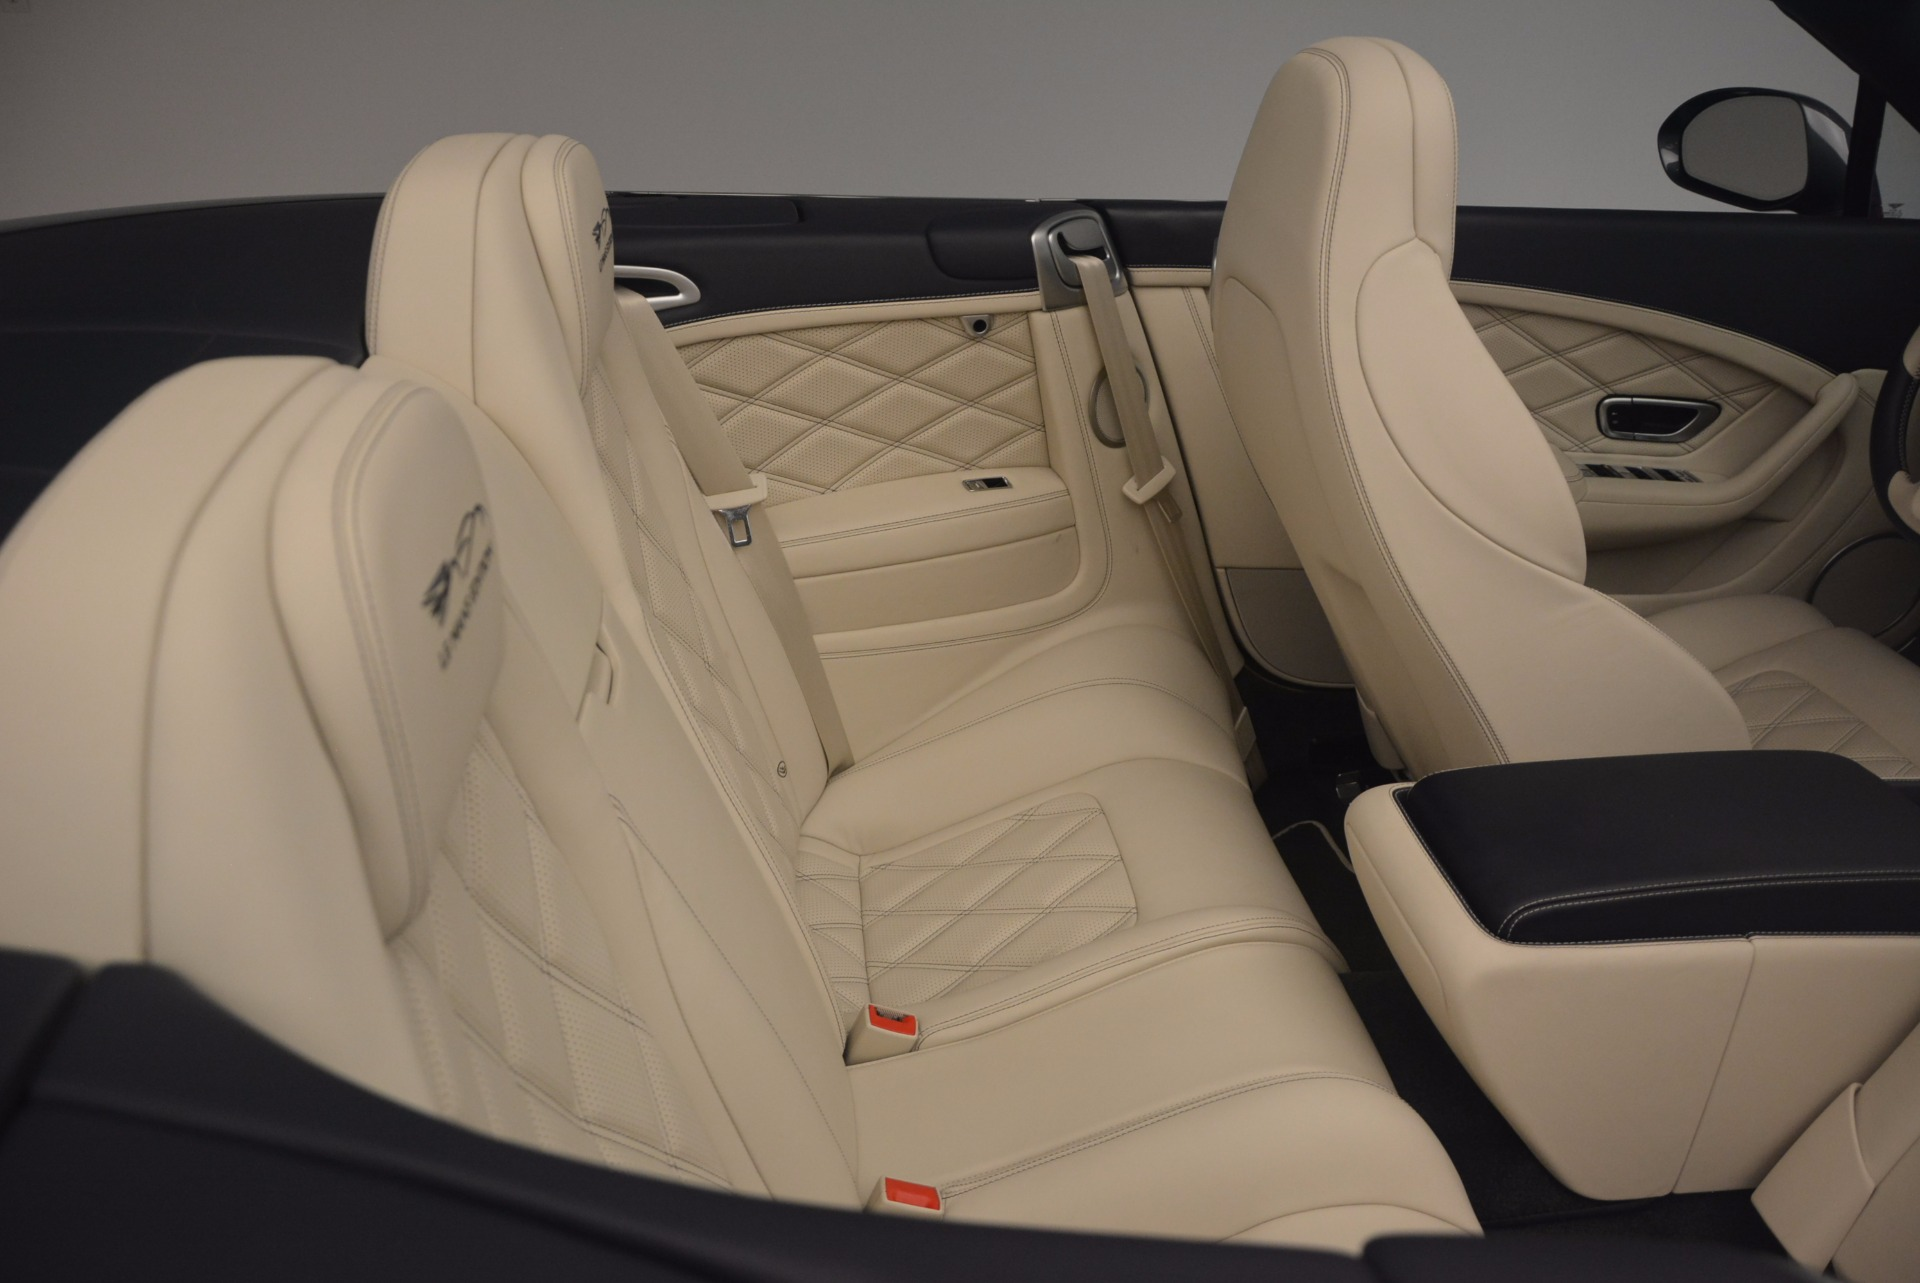 Used 2013 Bentley Continental GT V8 Le Mans Edition, 1 of 48 For Sale In Greenwich, CT 1288_p53